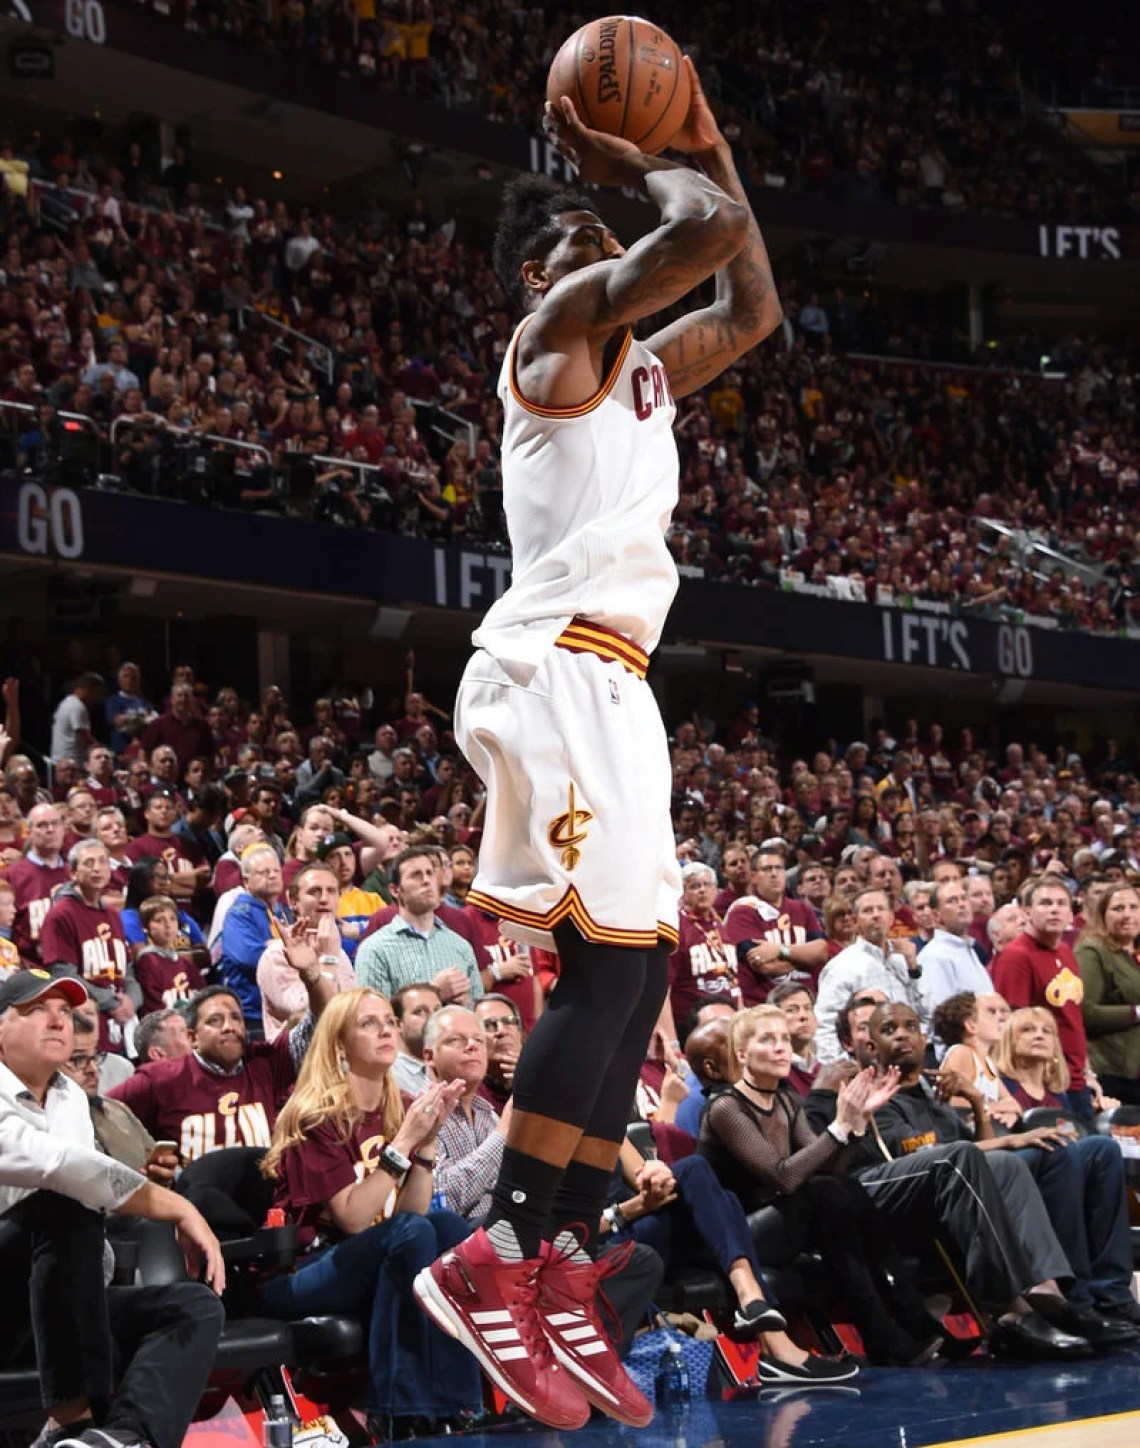 CLEVELAND, OH - JUNE 8: Iman Shumpert #4 of the Cleveland Cavaliers shoots the ball against the Golden State Warriors during Game Three of the 2016 NBA Finals on June 8, 2016 at The Quicken Loans Arena in Cleveland, Ohio. NOTE TO USER: User expressly acknowledges and agrees that, by downloading and/or using this Photograph, user is consenting to the terms and conditions of the Getty Images License Agreement. Mandatory Copyright Notice: Copyright 2016 NBAE (Photo by Andrew D. Bernstein/NBAE via Getty Images)